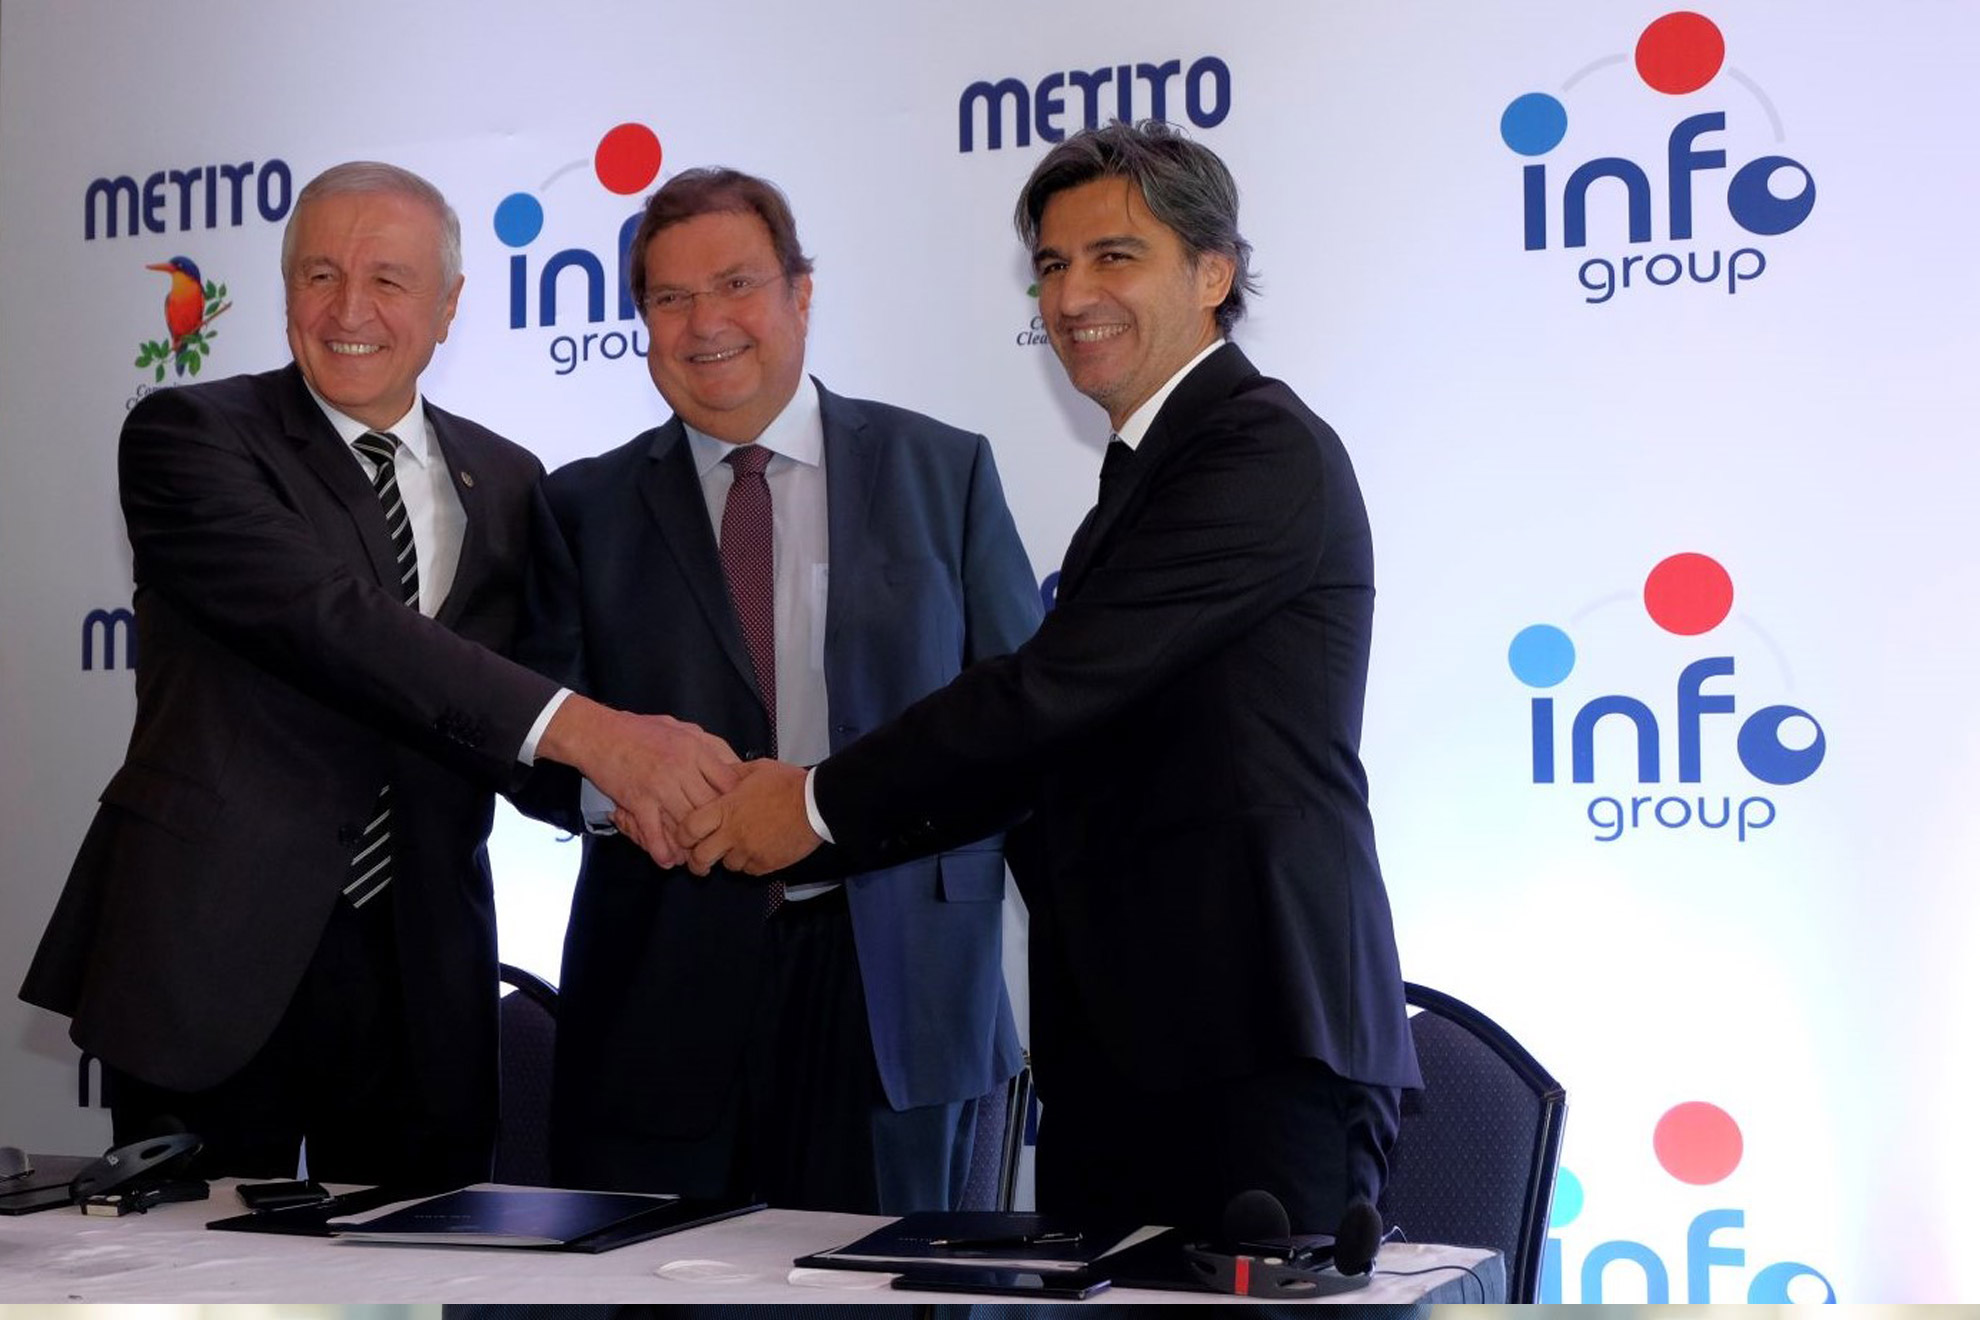 Metito acquires majority stake in Turkish chemical group Info, further boosting the growing Turkey water sector